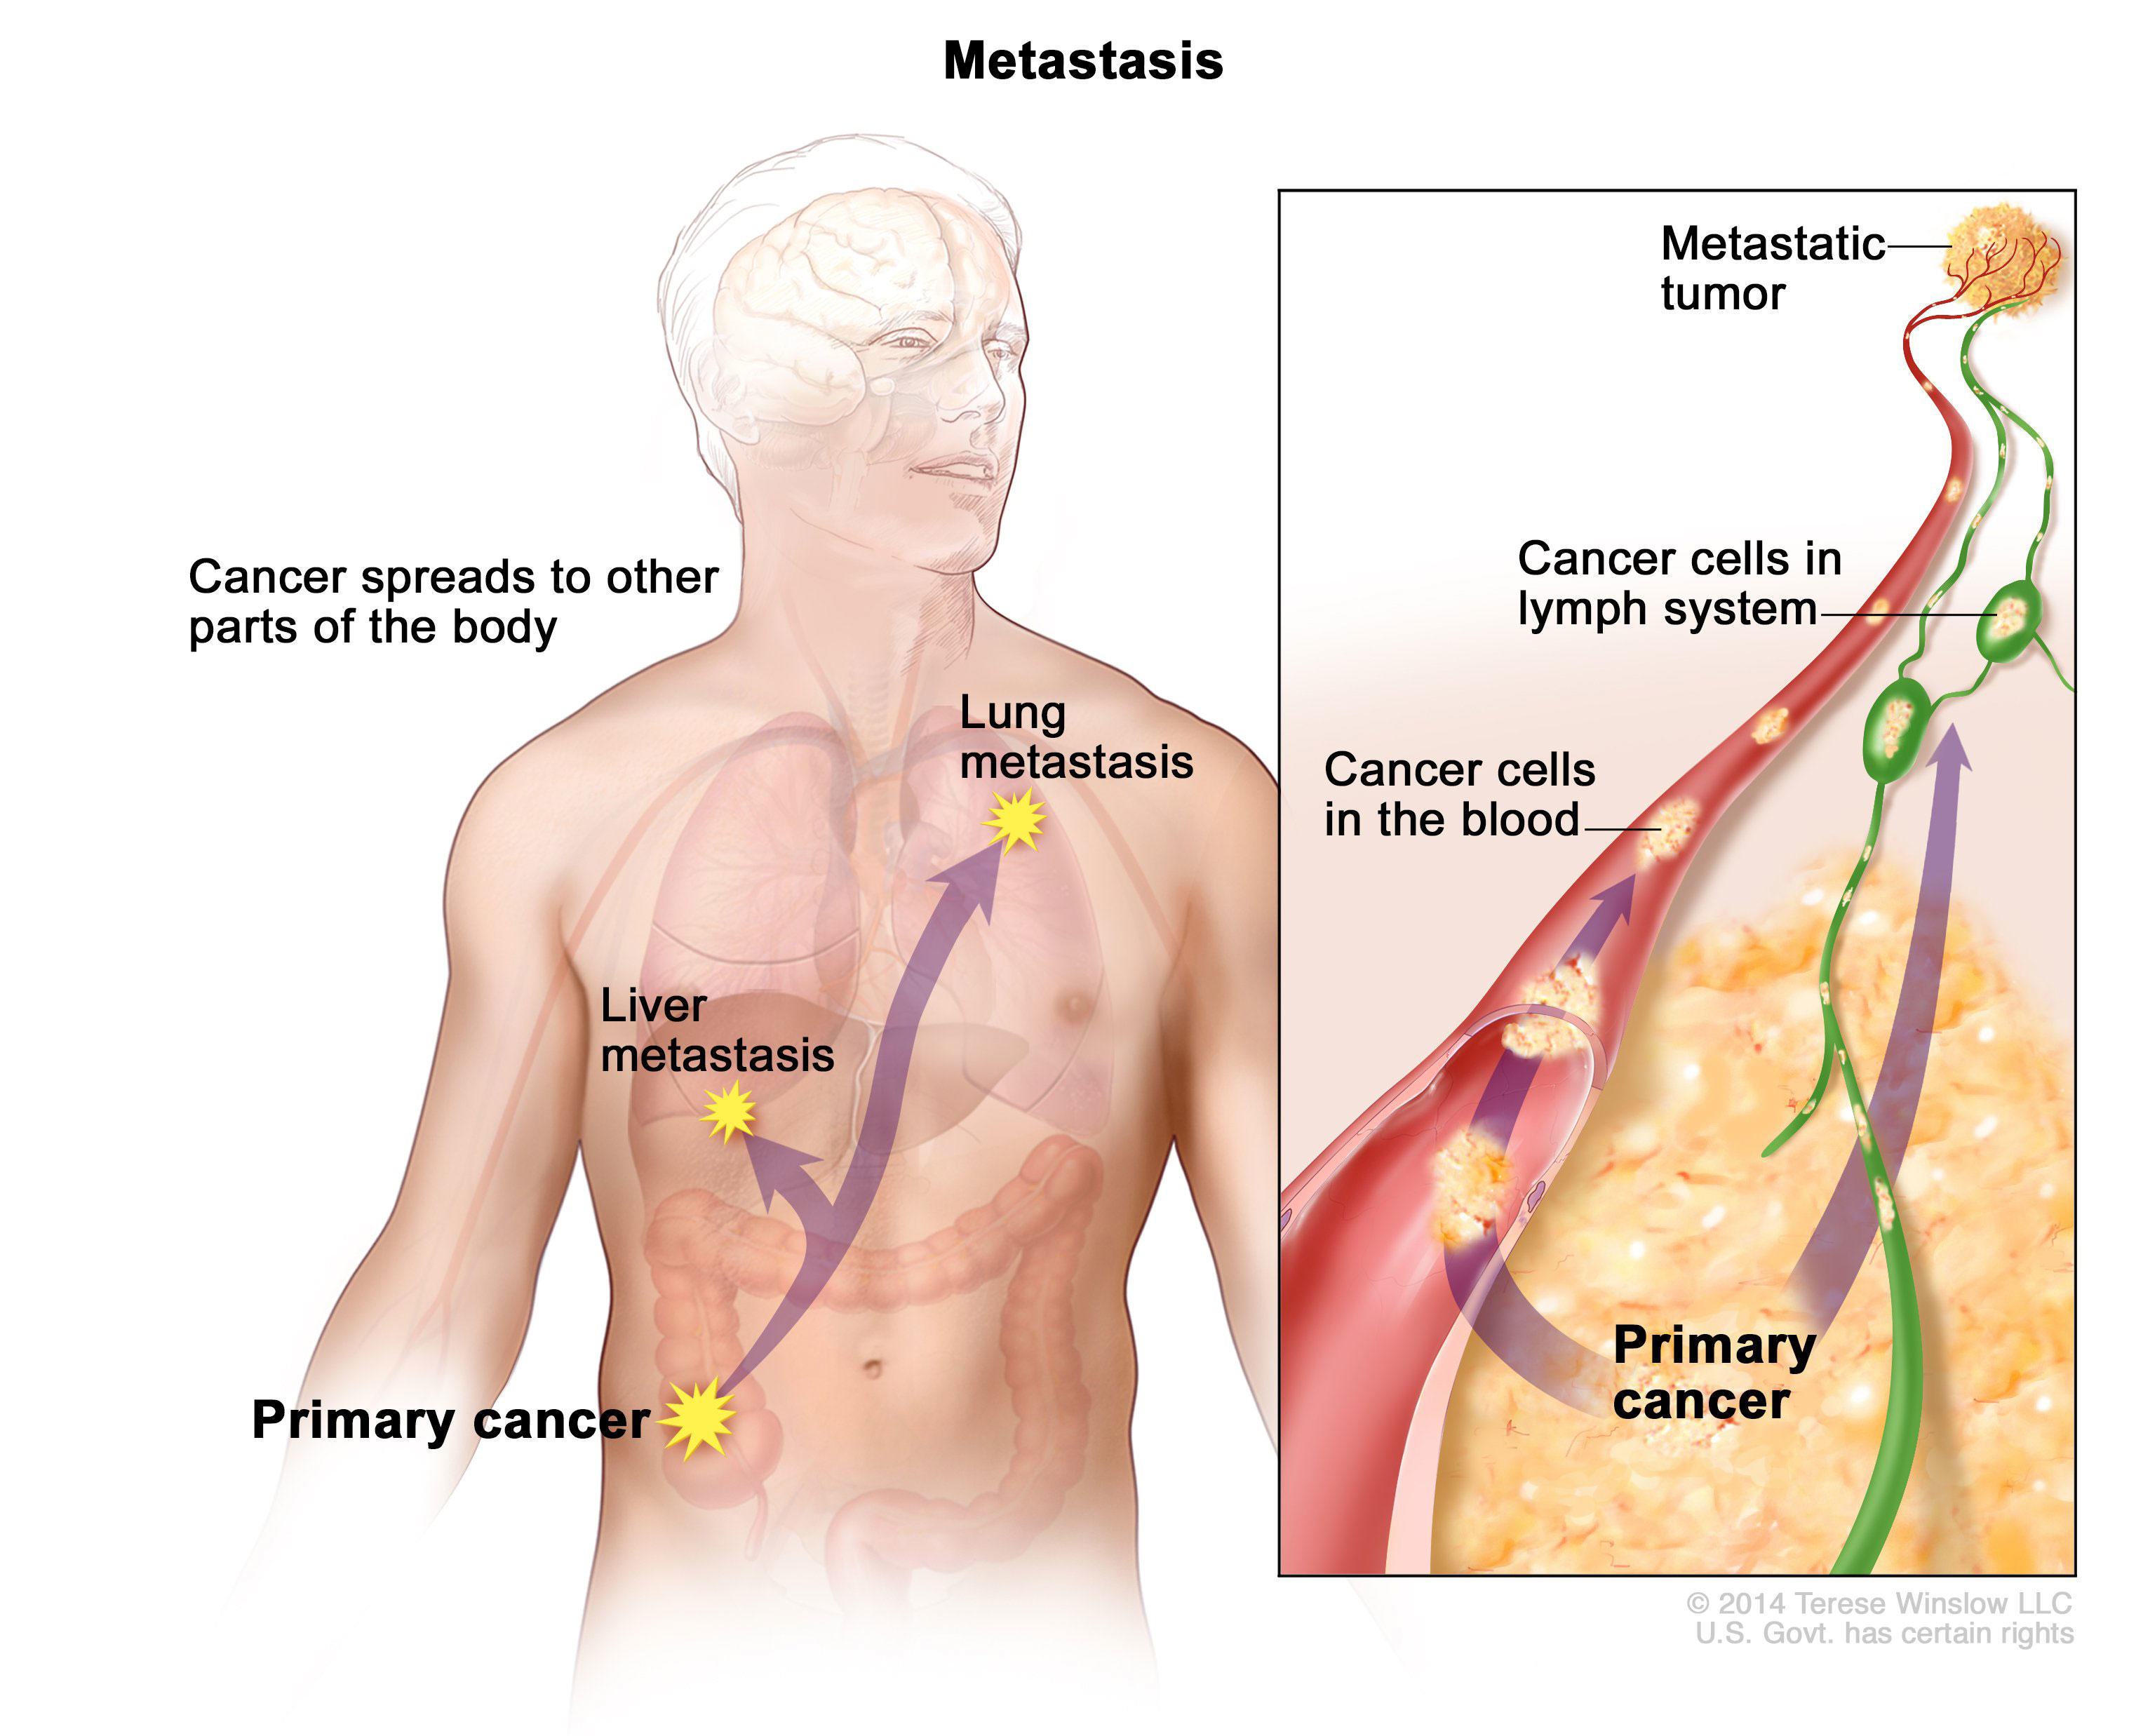 metastatic cancer carcinoma